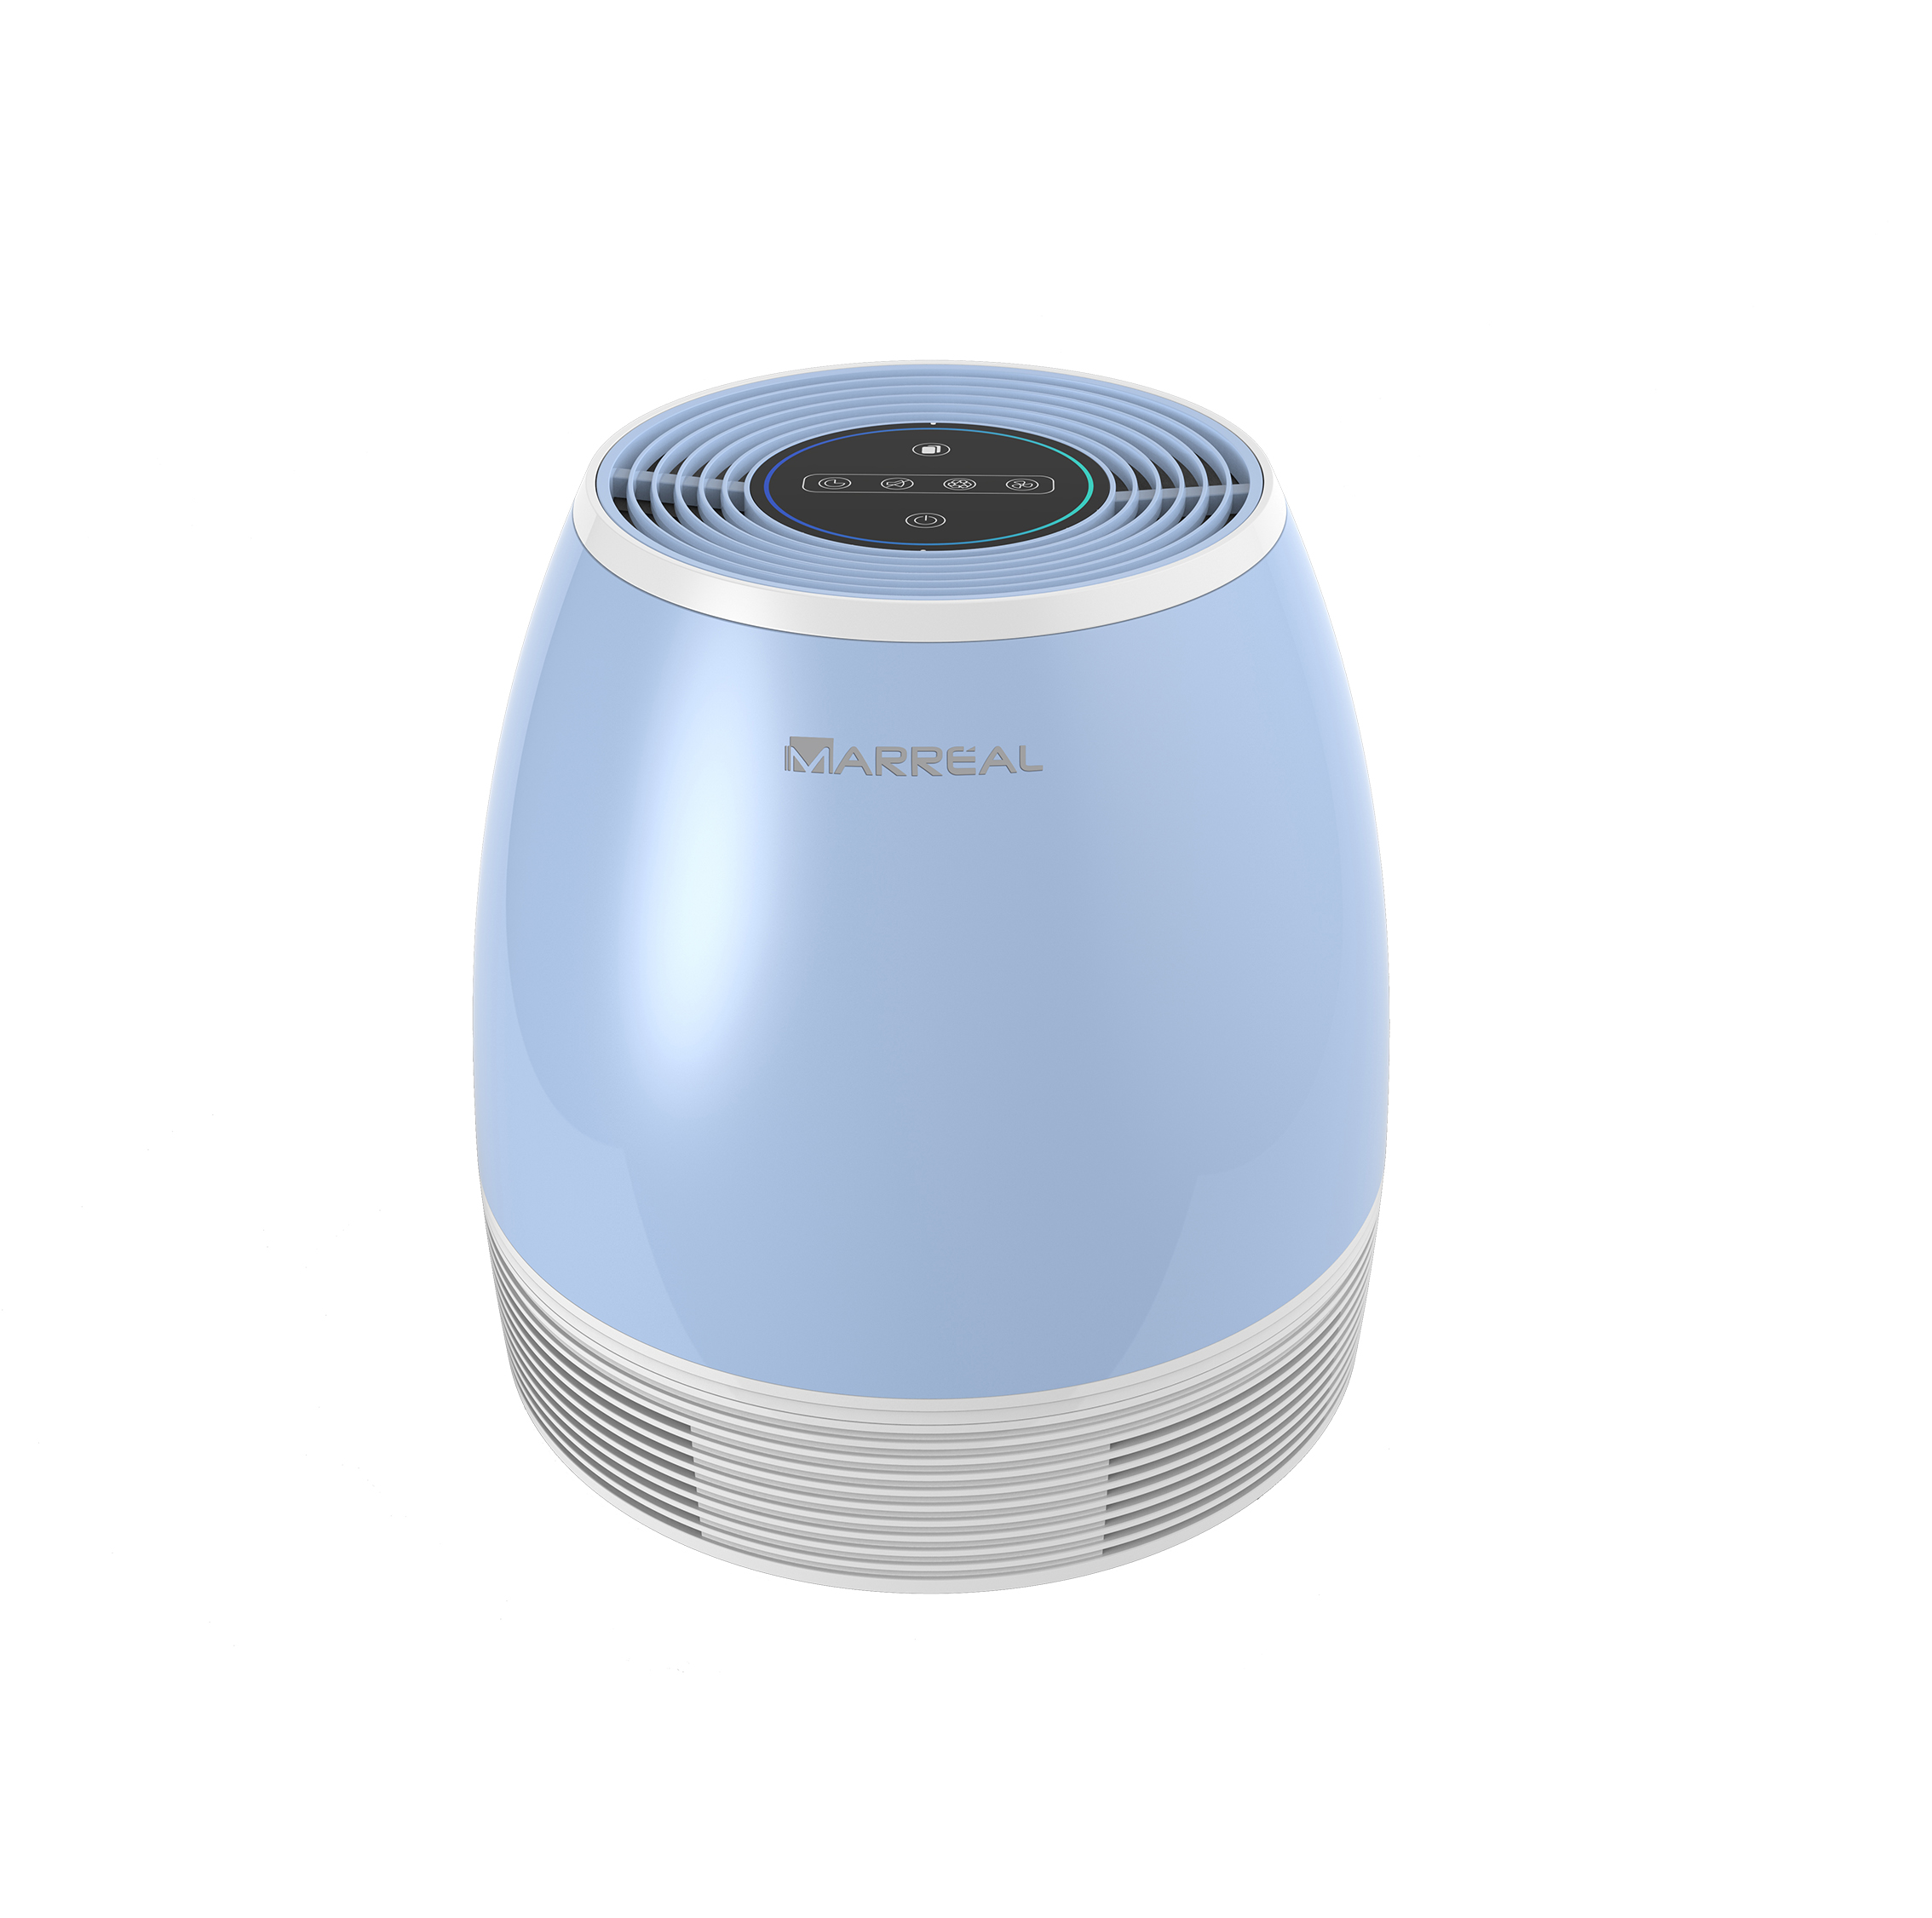 Schwarzwald Smart Portable Desktop Luftreiniger Filter Mit HEPA Filtration